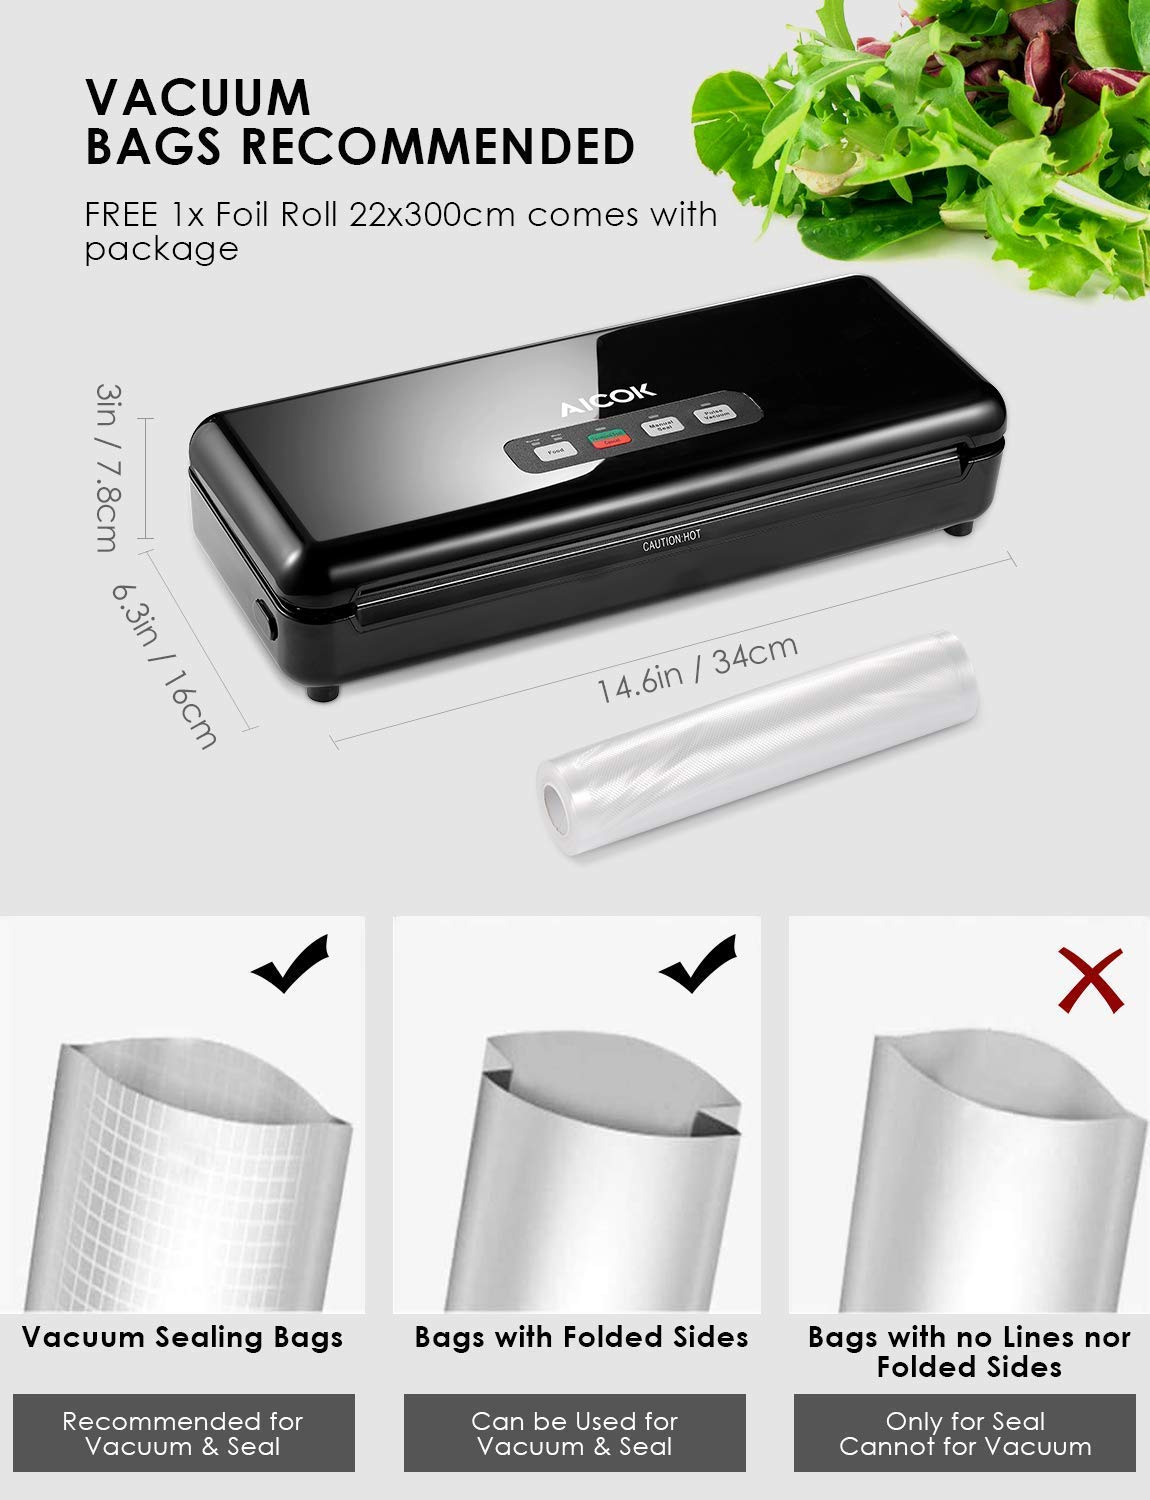 Aicook Vacuum Sealer Machine, Bag Cutter Automatic Food Sealer, Pulse Vacuum Function Food Savers w/Starter Kit|Led Indicator Lights|Easy to Clean|Dry & Moist Food Modes| Compact Design by AICOOK